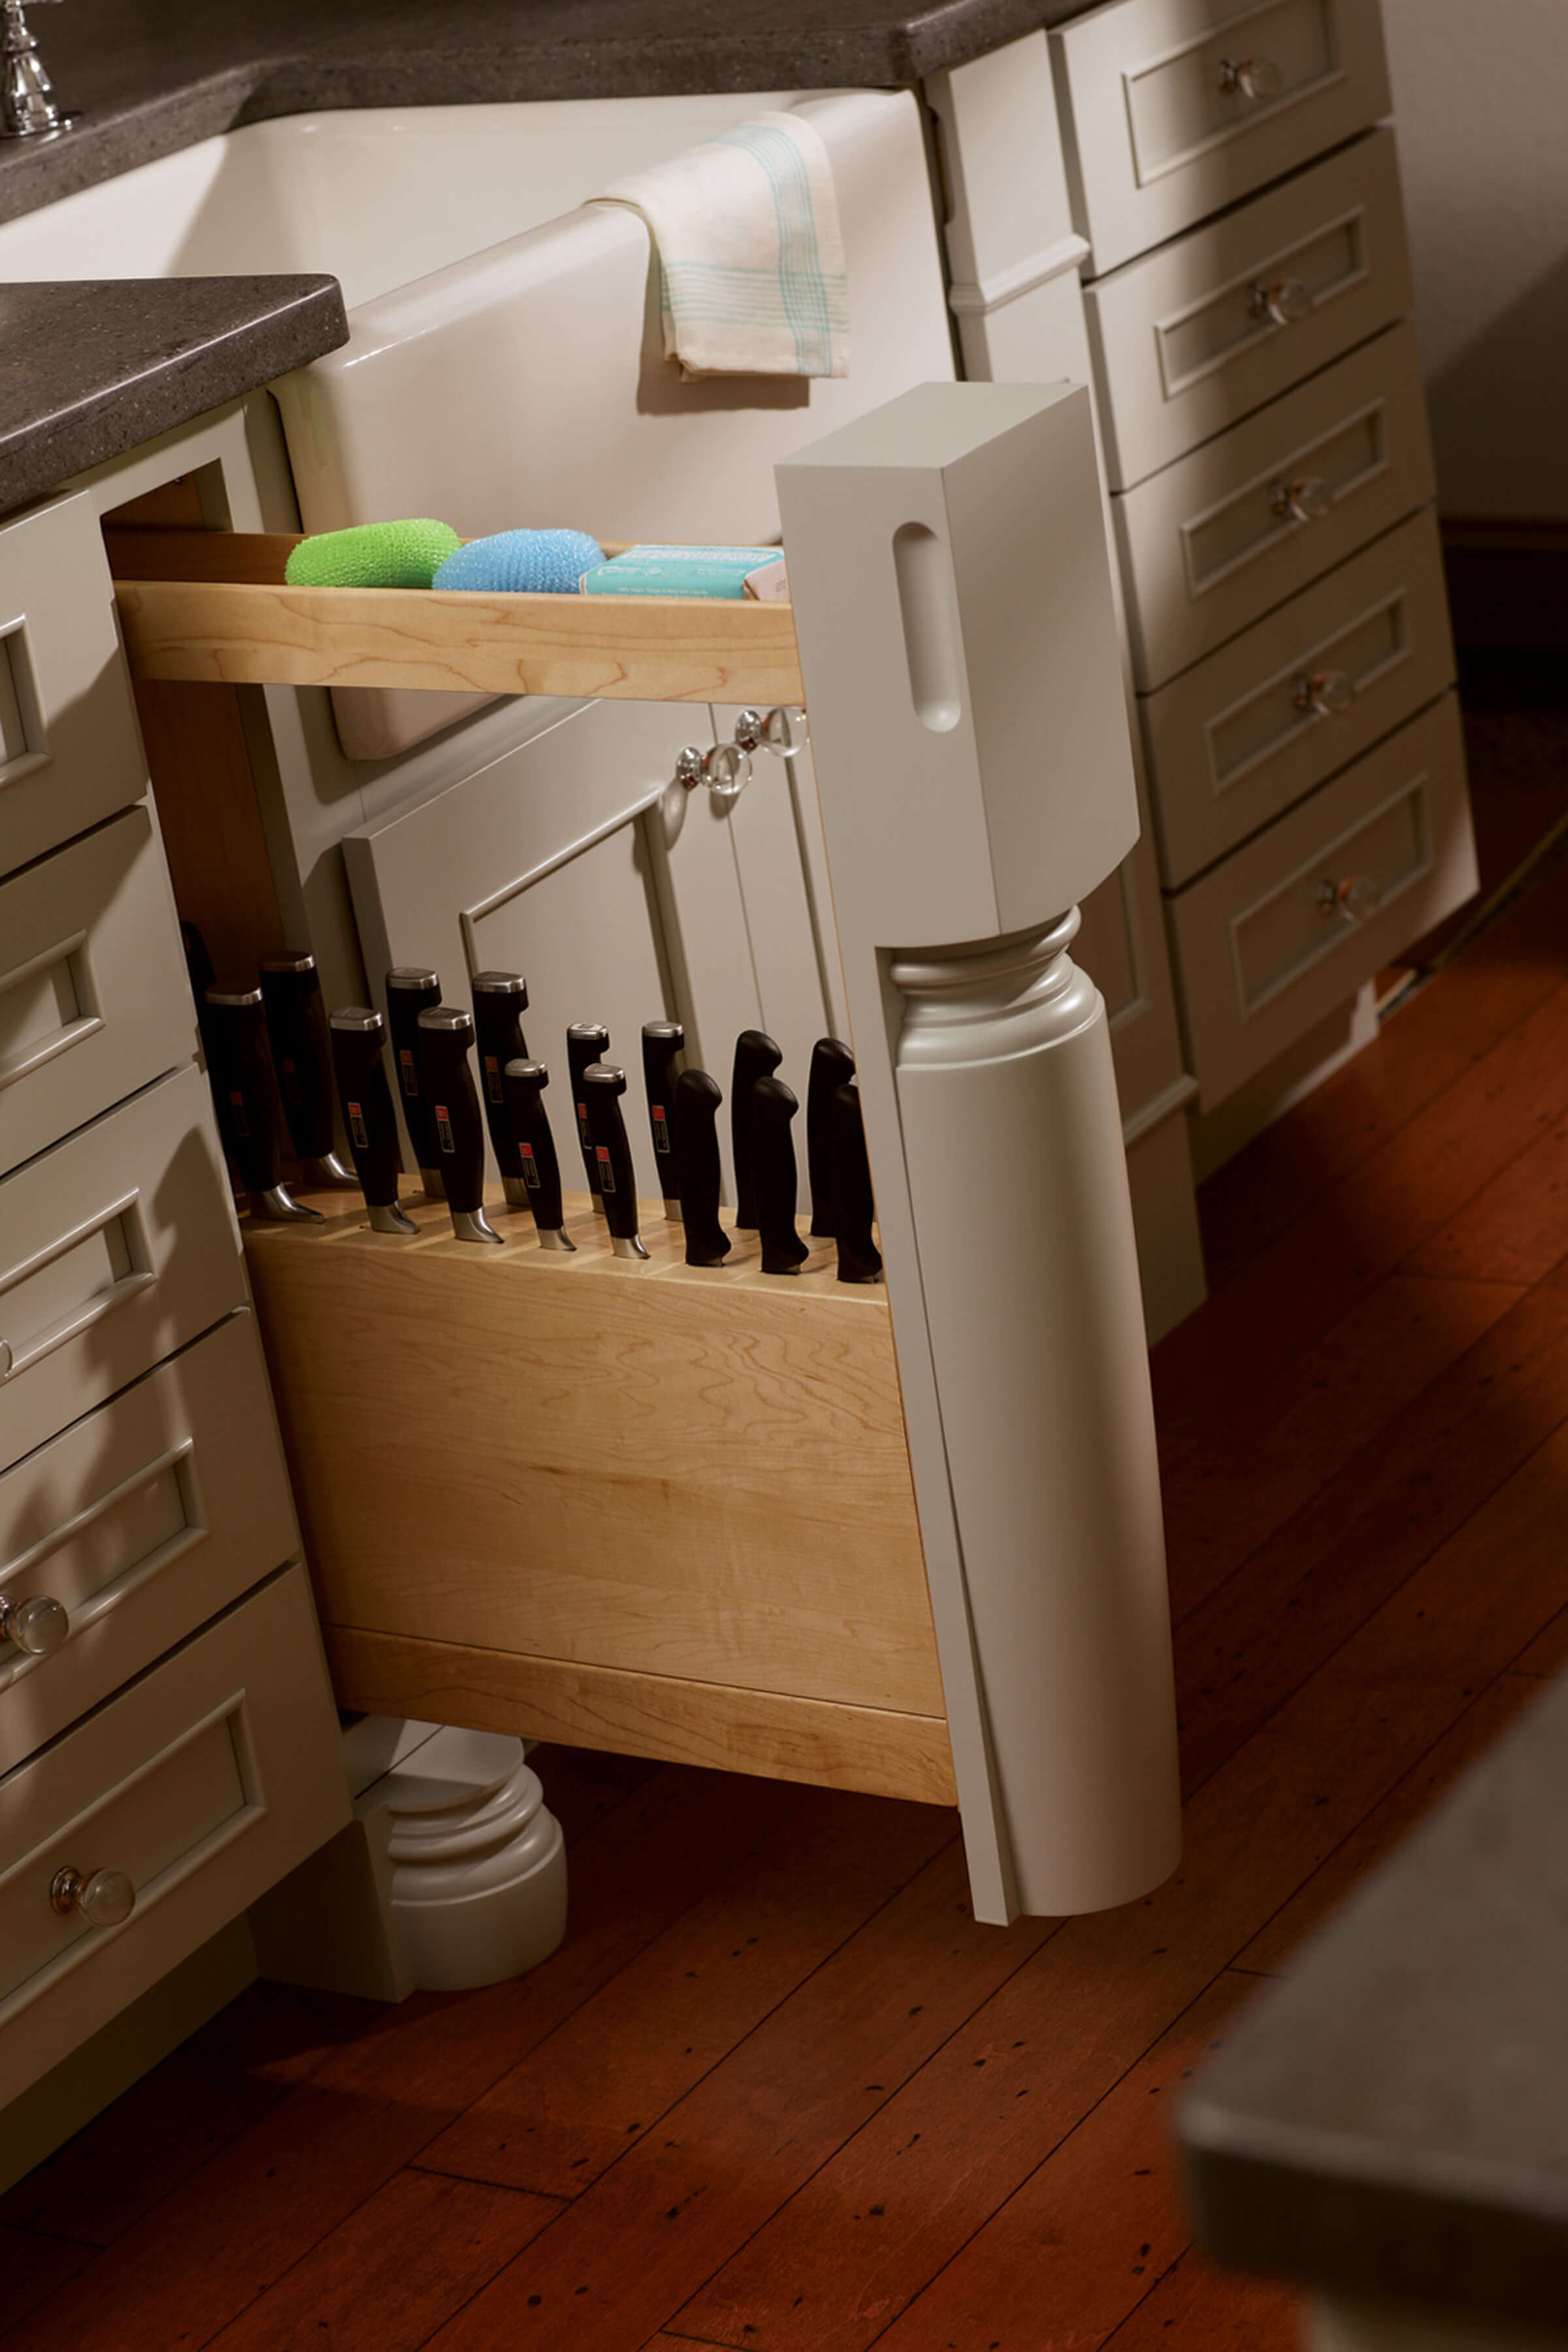 Dura Supreme's Pull-Out Slotted Knife Block with a turned post.